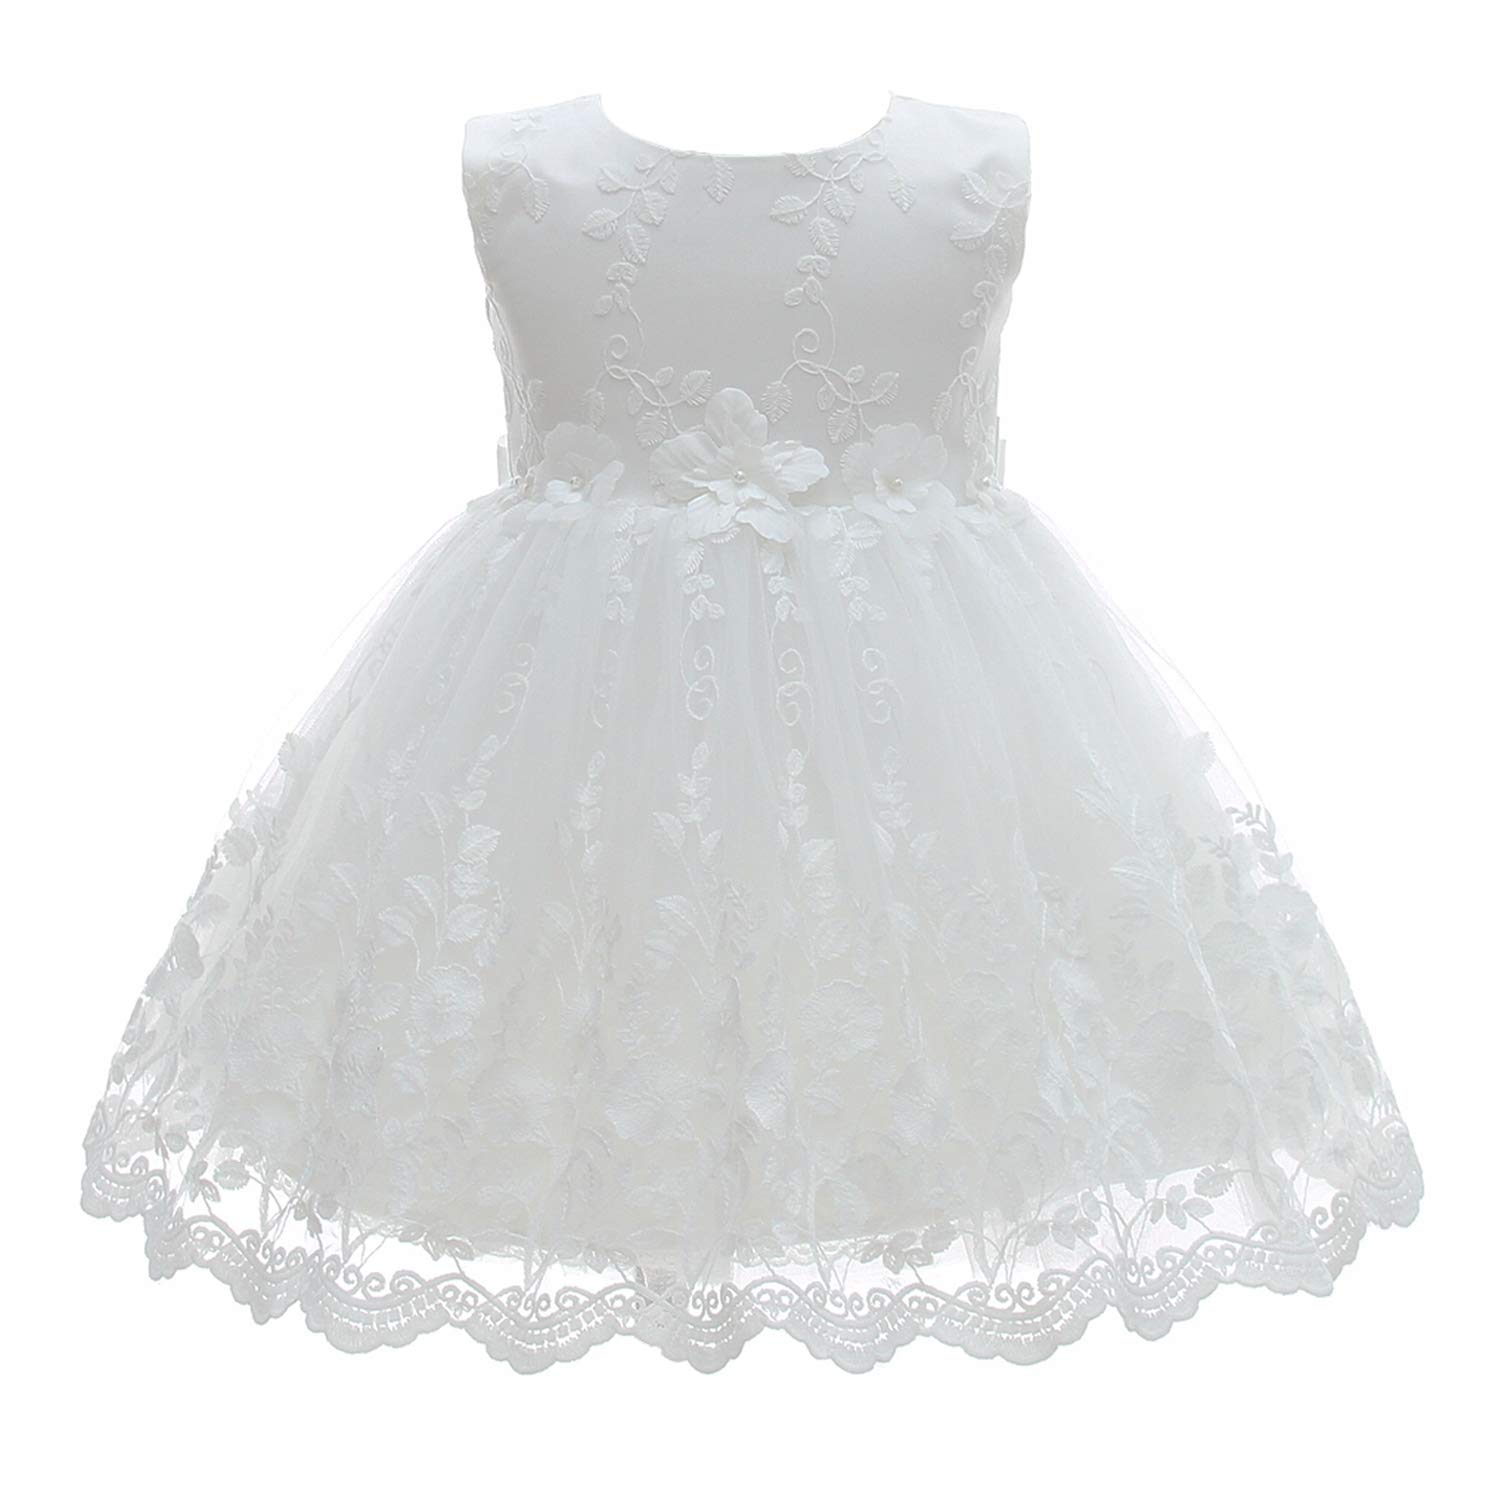 Silver Mermaid Baby Girl Christening Dress 2 Piece Floral Lace Christening Gown Baptism Dress Set